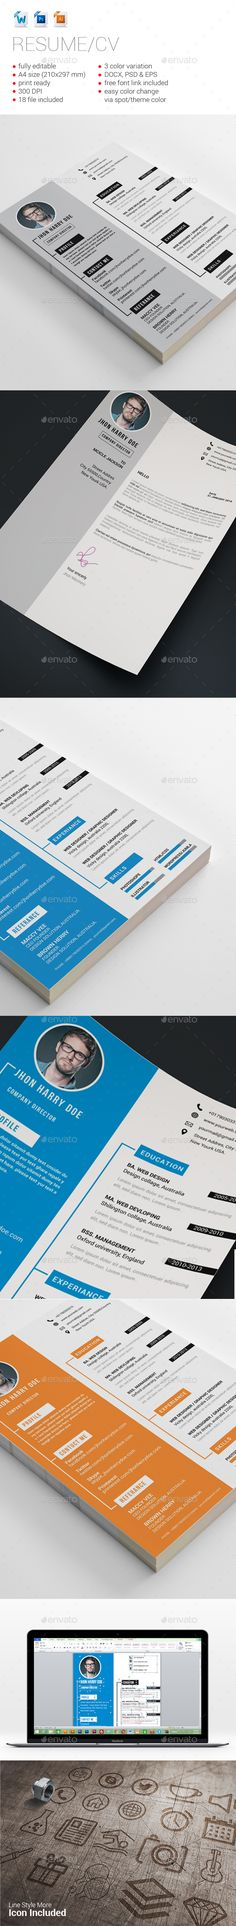 Love The Idea Of This Look For A Resume Design. I Think The Header